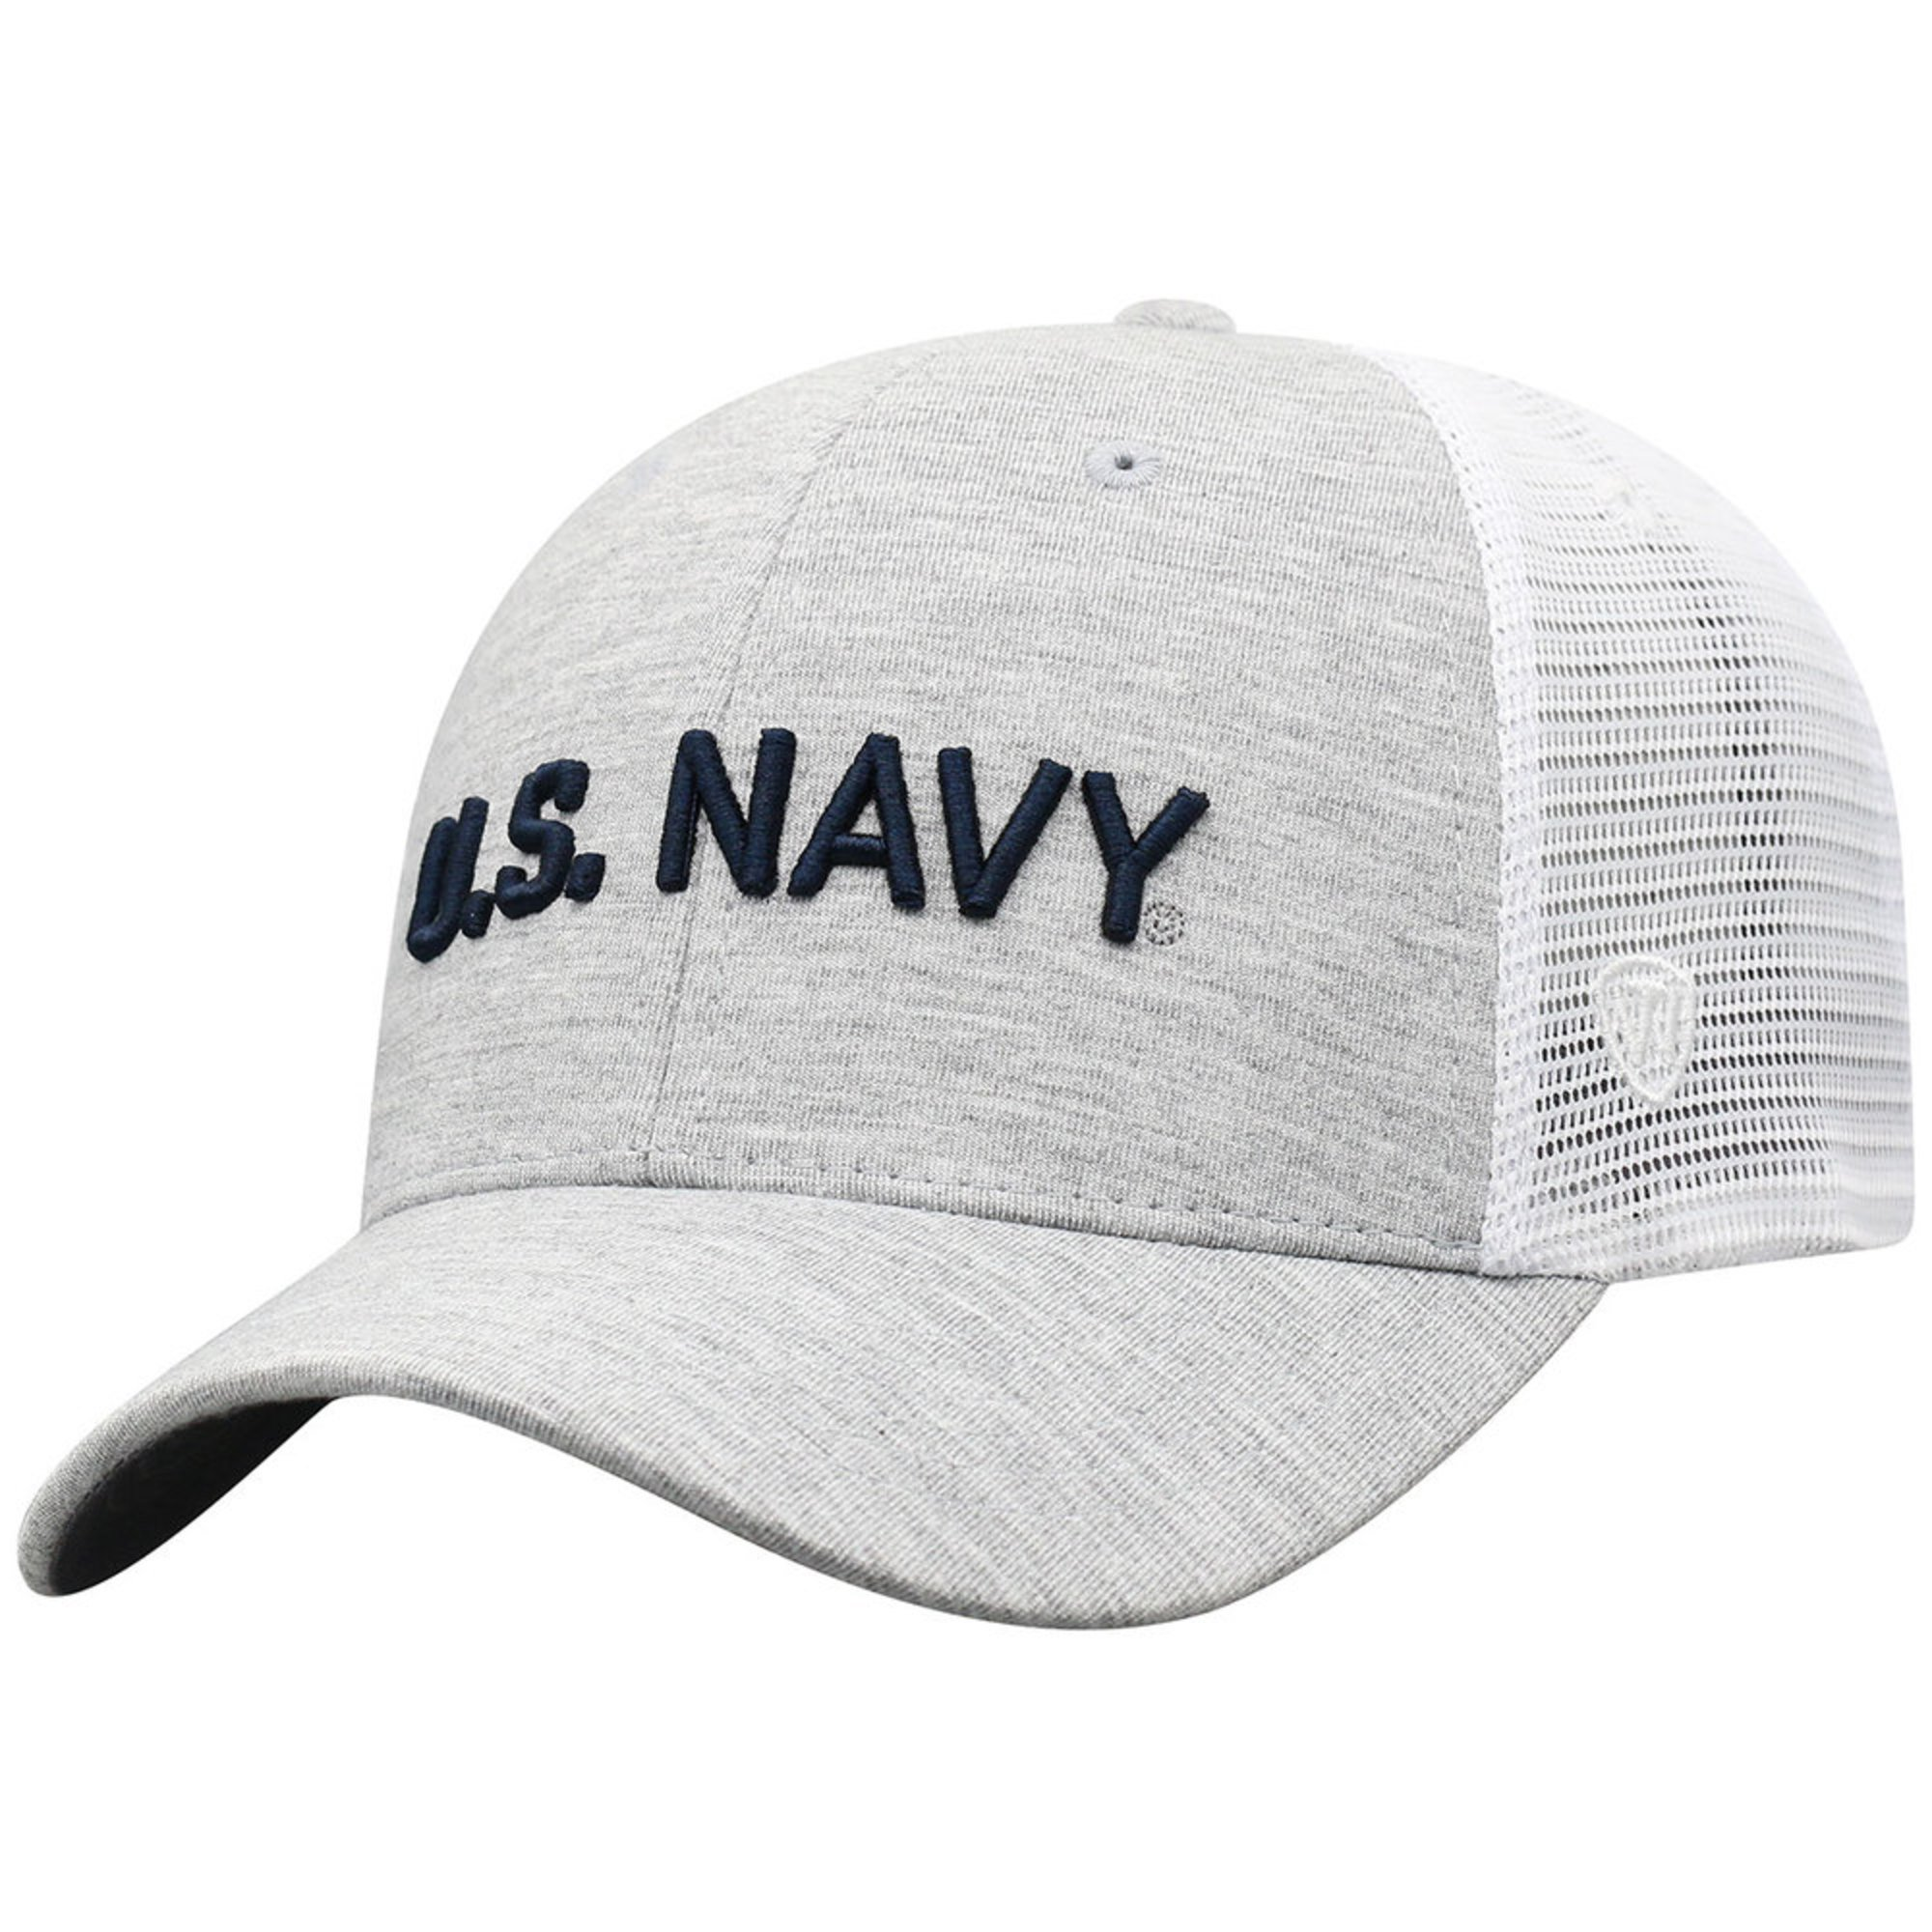 b3f91739bce Top Of The World Men's Usn Mesh Hat | Navy Pride Hats & Beanies ...